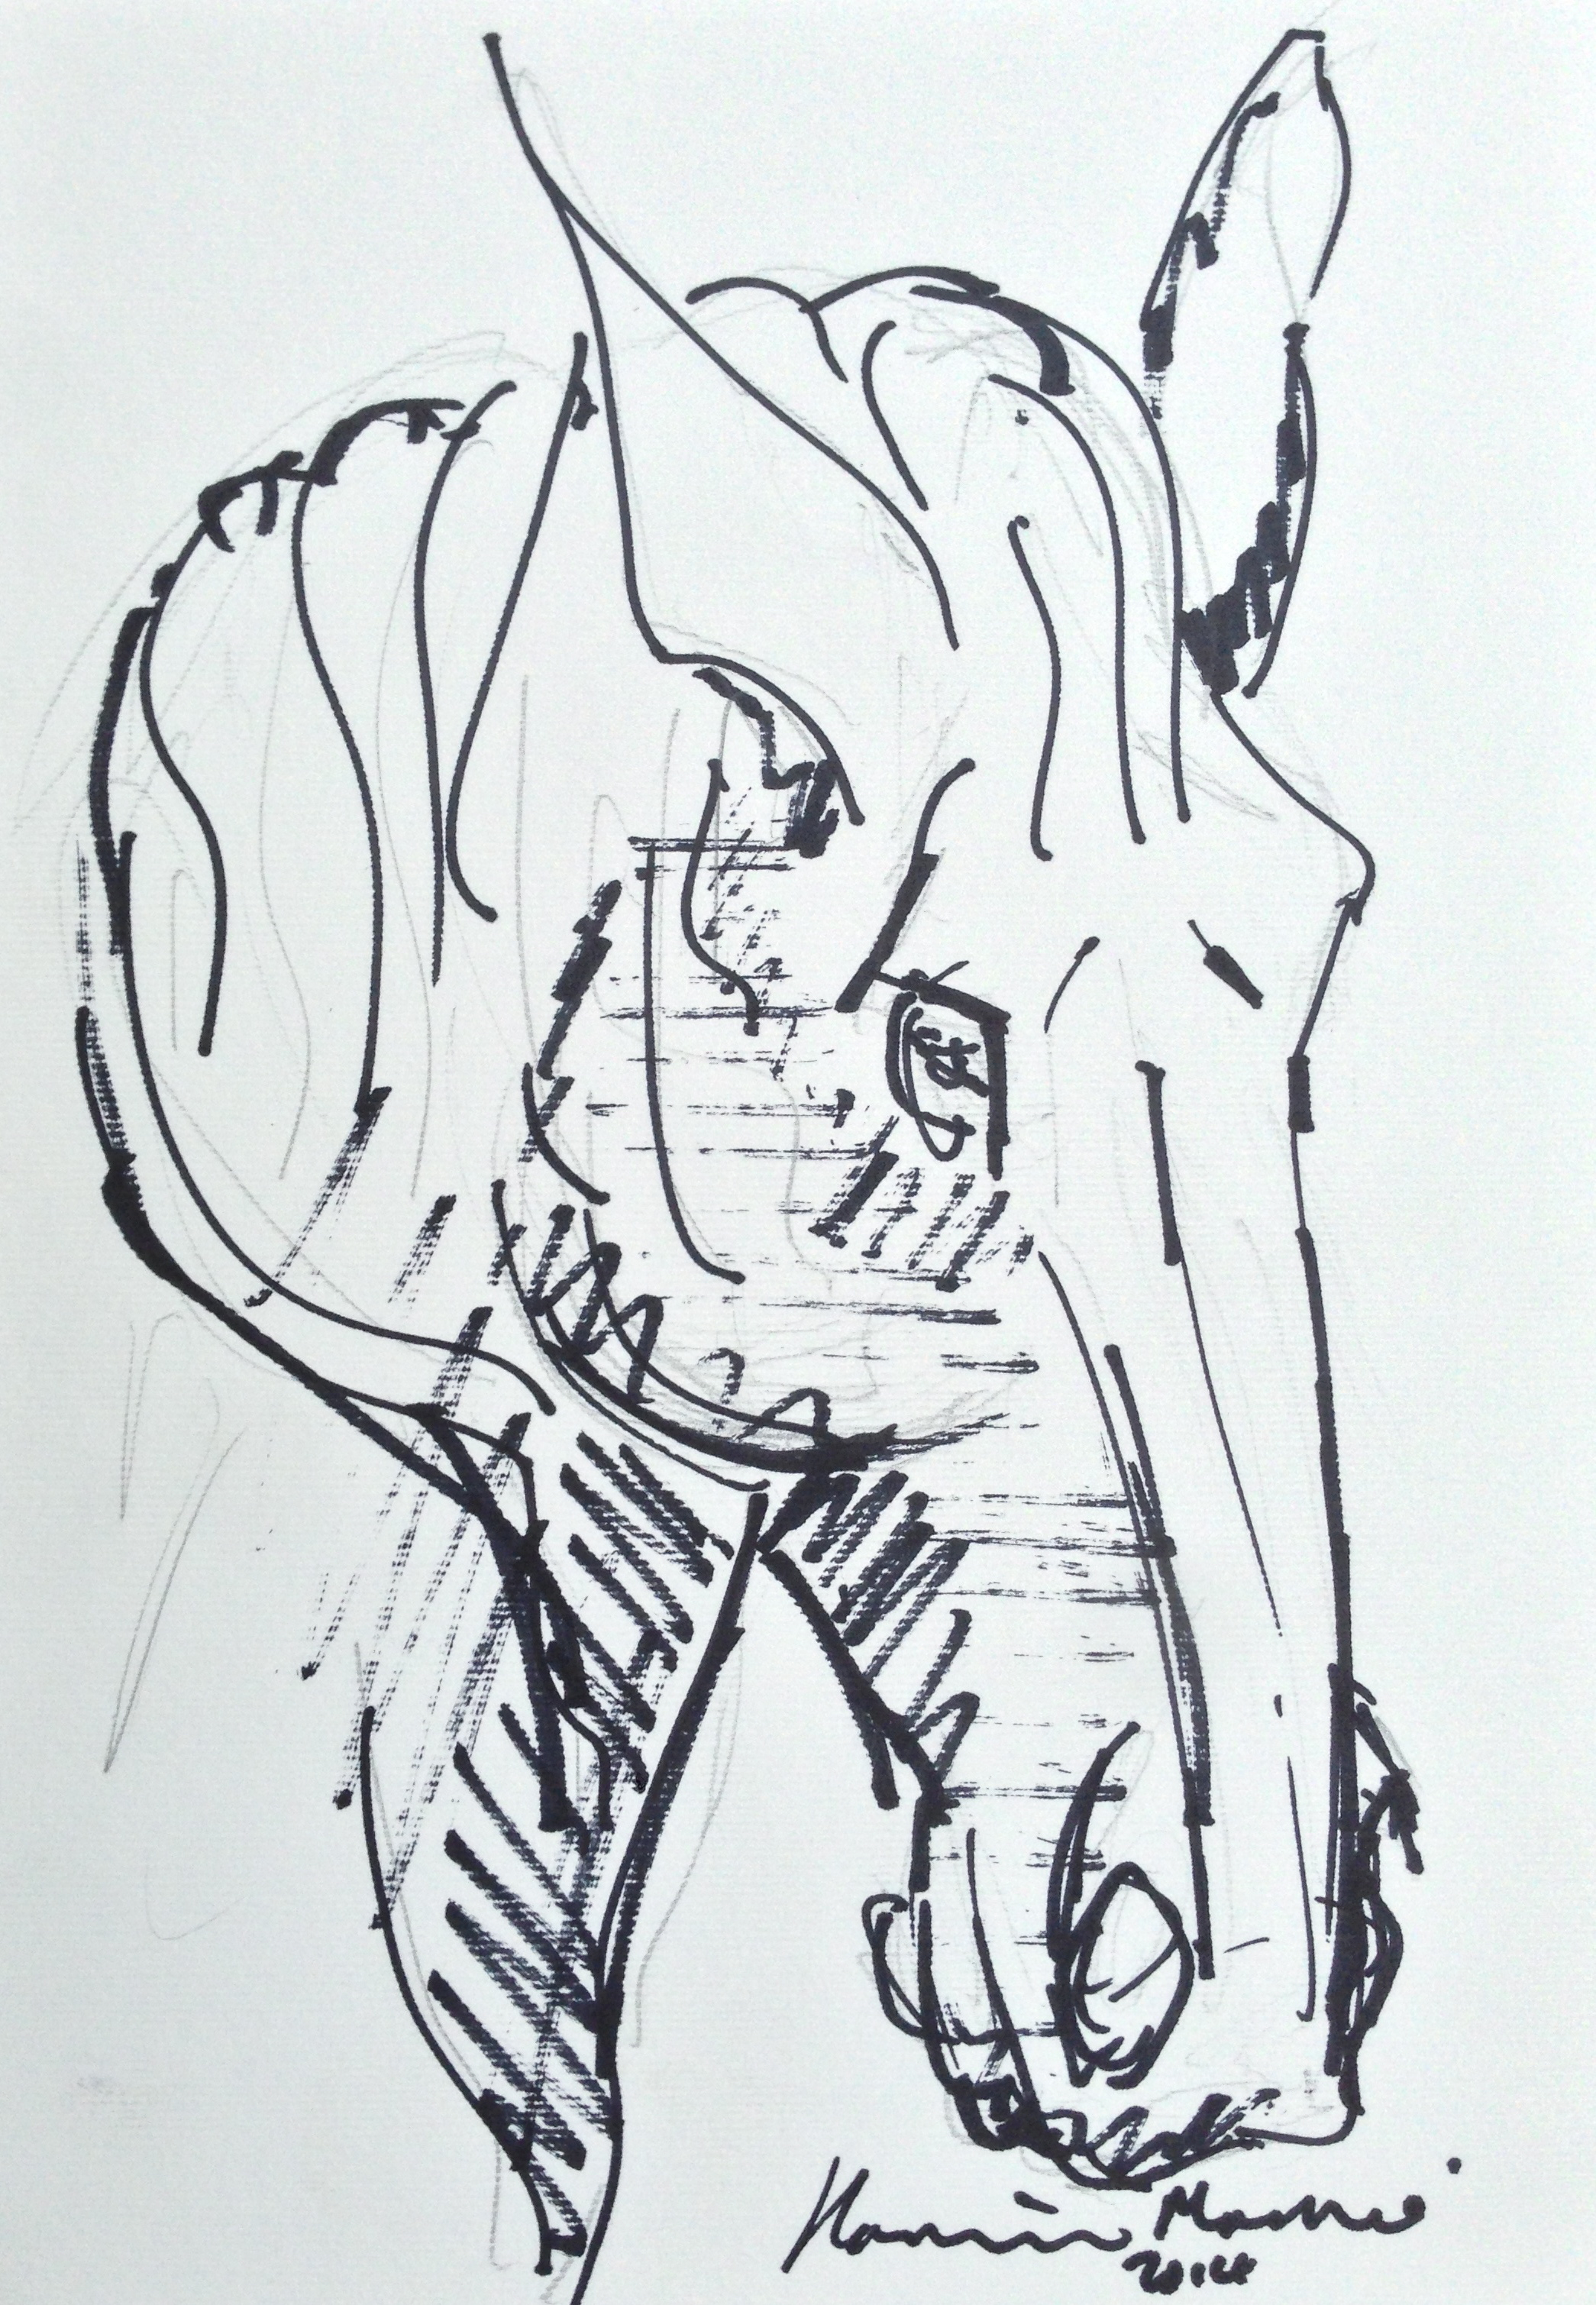 Lot 33 - Hamish Mackie Head of a Horse signed and dated 2014, pencil underneath felt pen, 24.5 x 17.5cm.